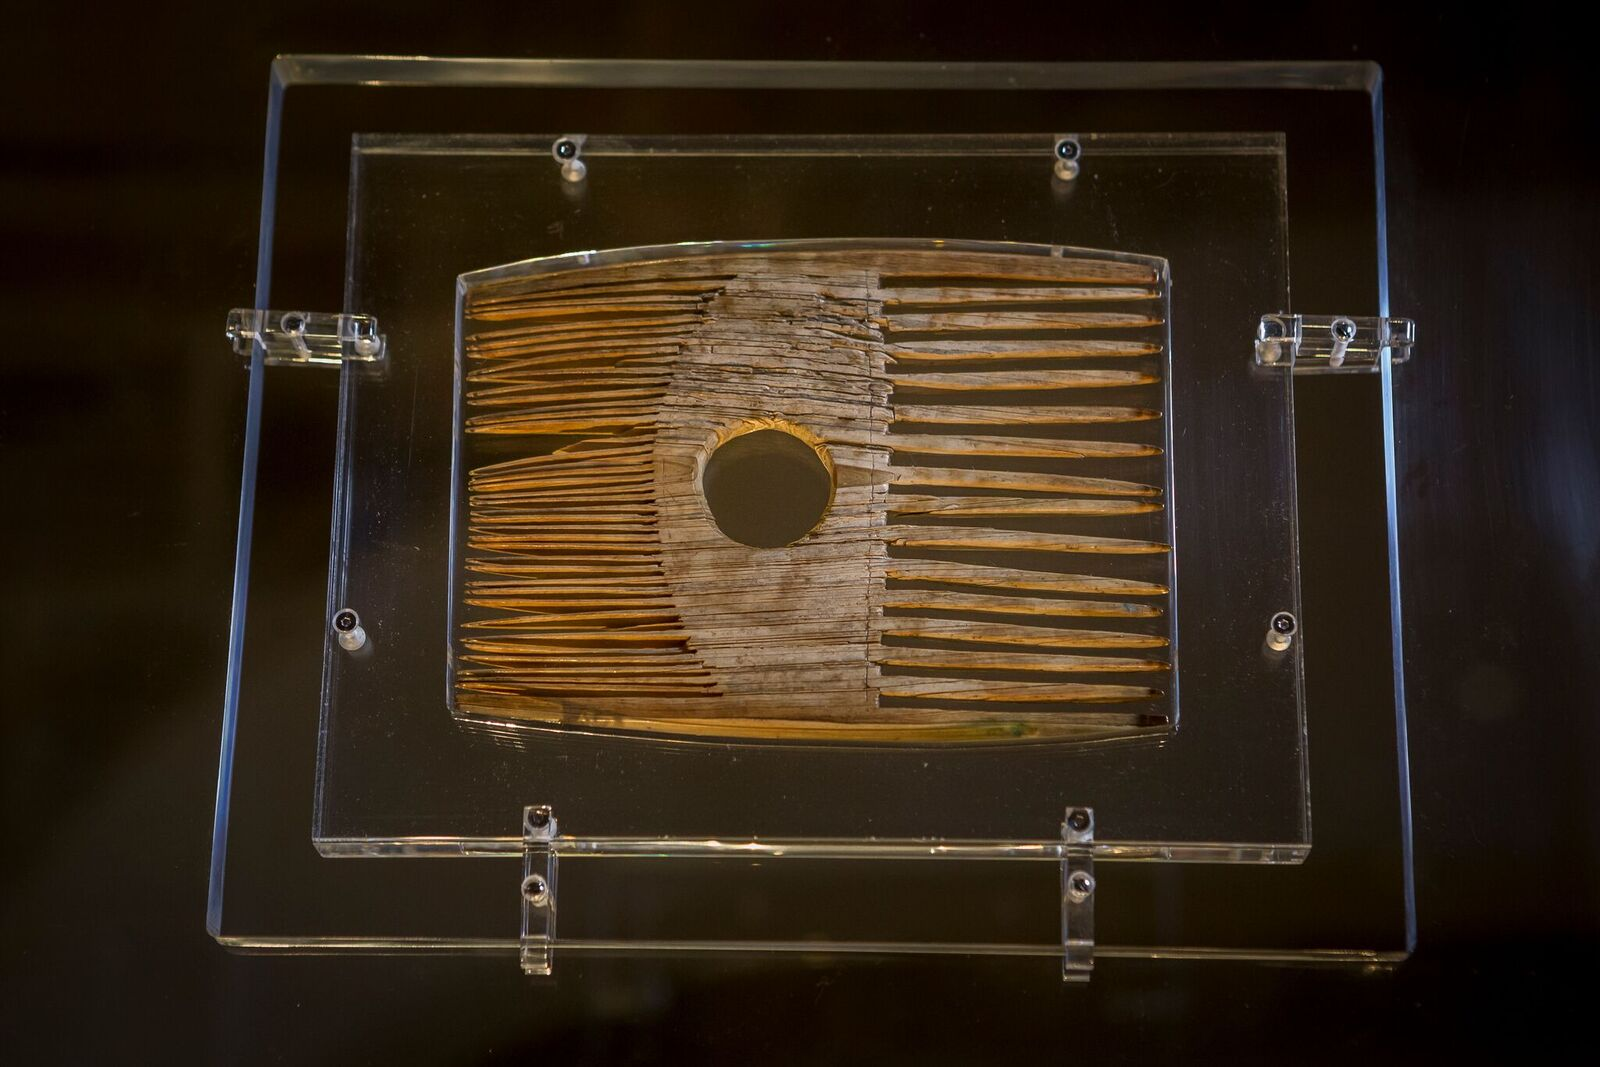 Comb, thought to have belonged to St Cuthbert